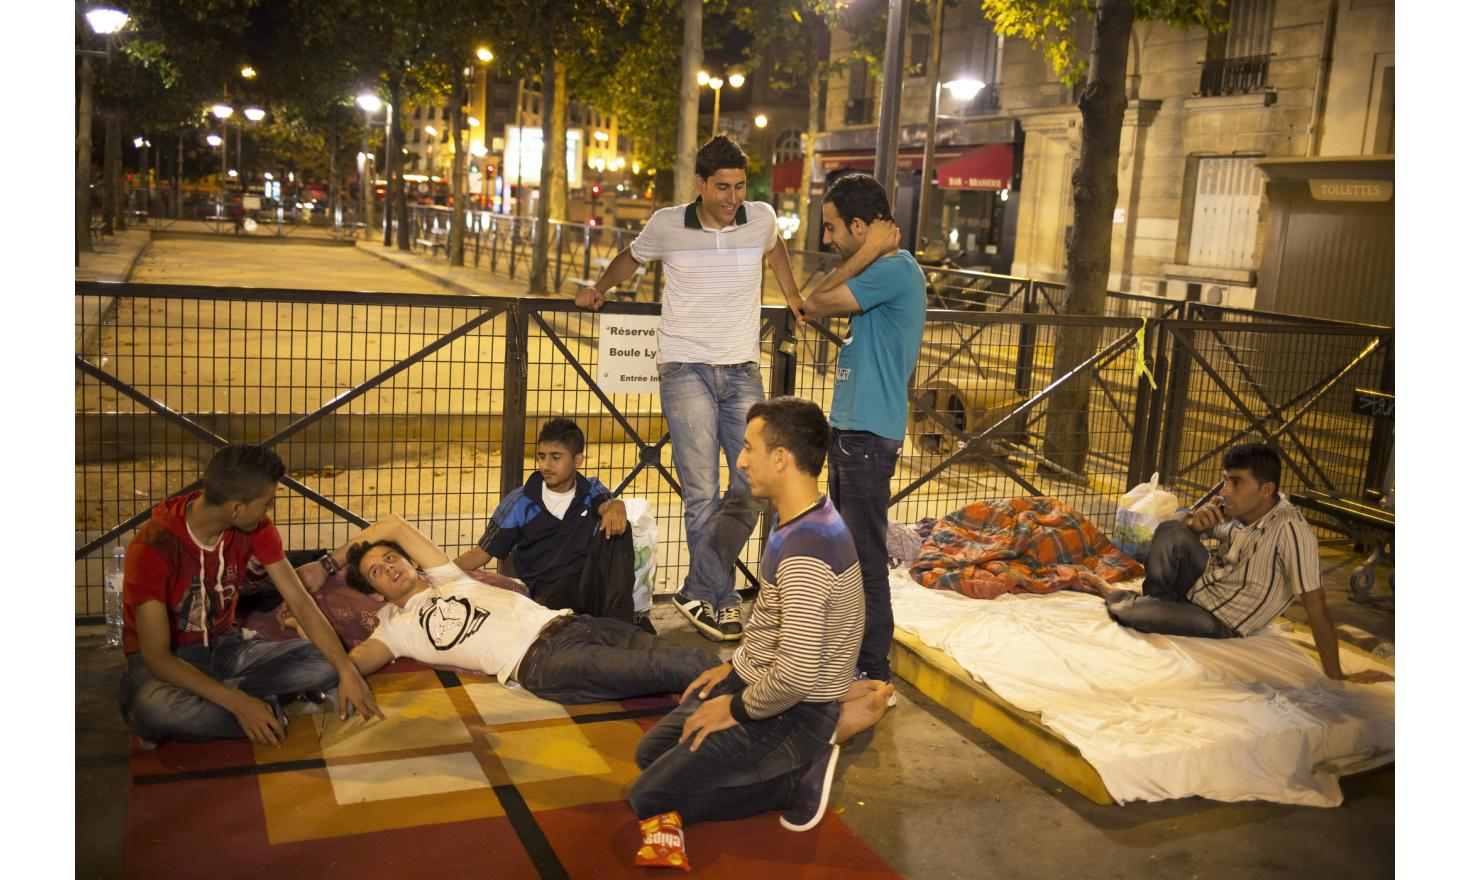 """Paris, France 03/08/2013 Luqman and Fawad in a street near """"Parc Villemin"""" where other Afghan migrants, including lone minors, are sleeping."""